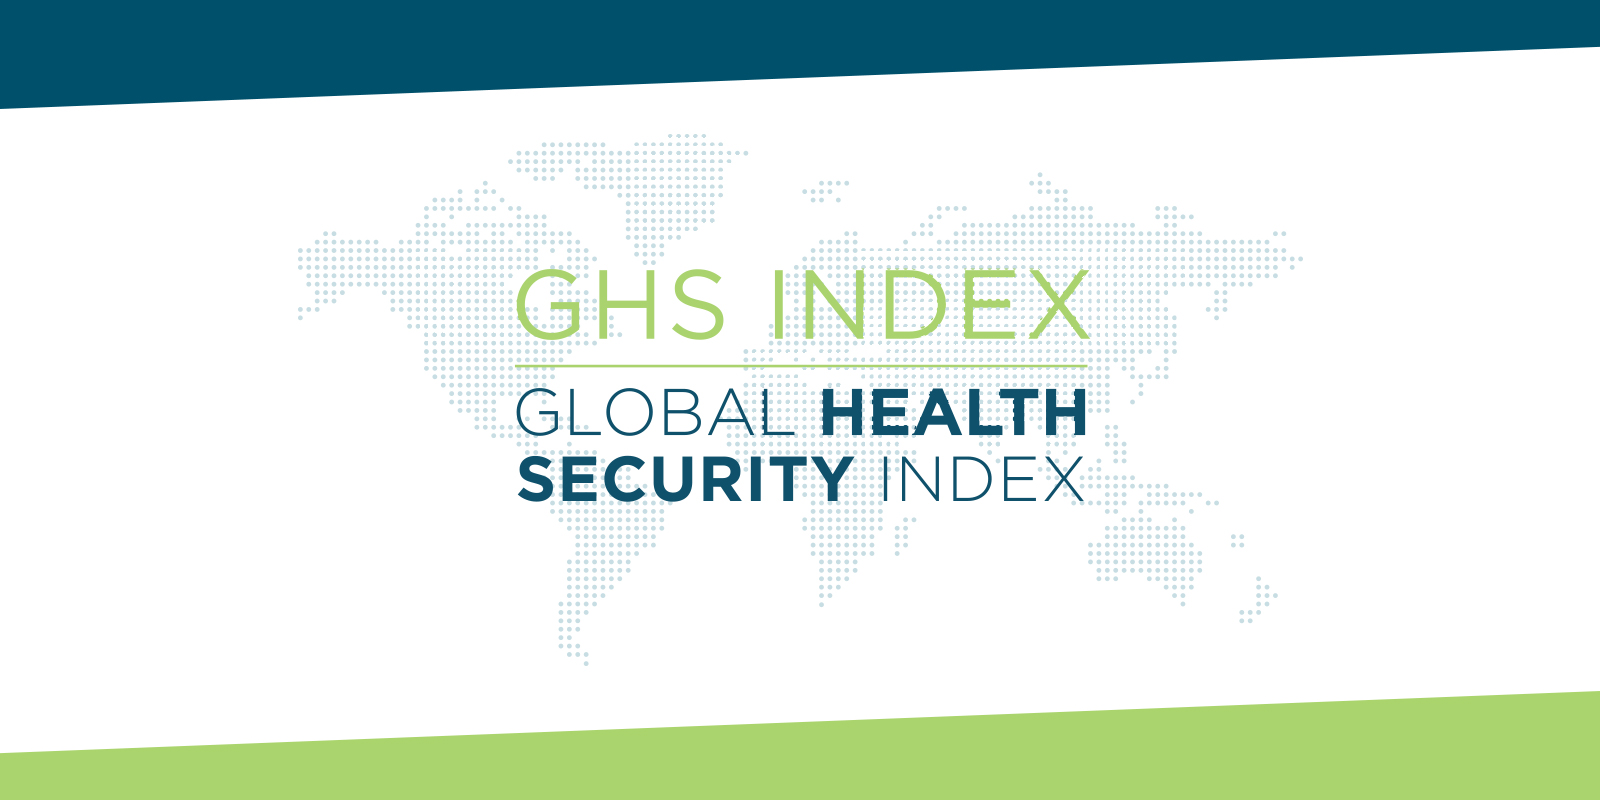 The Global Health Security Index